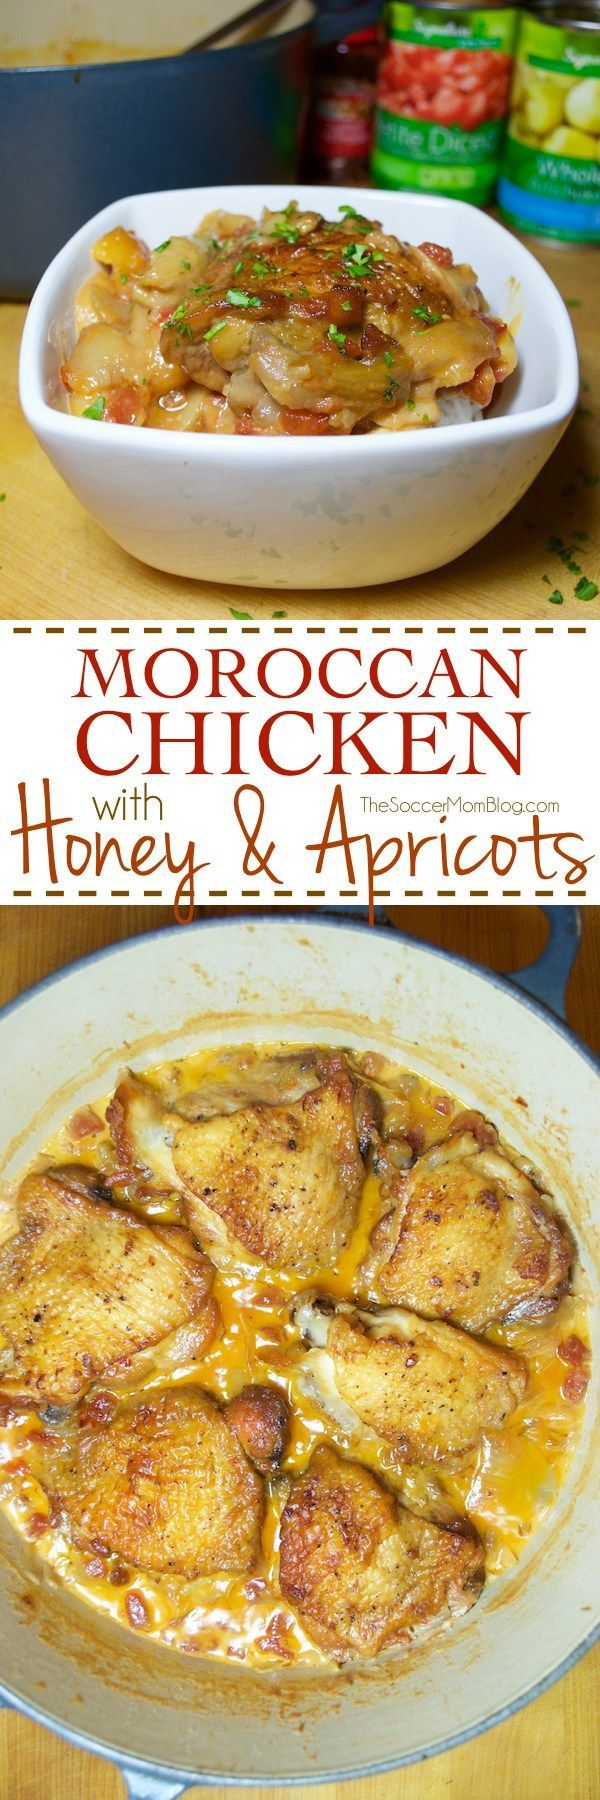 Sooo amazingly decadent -- it's now a staple in our dinner rotation! Rich Moroccan Chicken stew is the perfect mix of sweet, savory, & spicy! Recreate a traditional favorite at home with this surprisingly easy recipe.